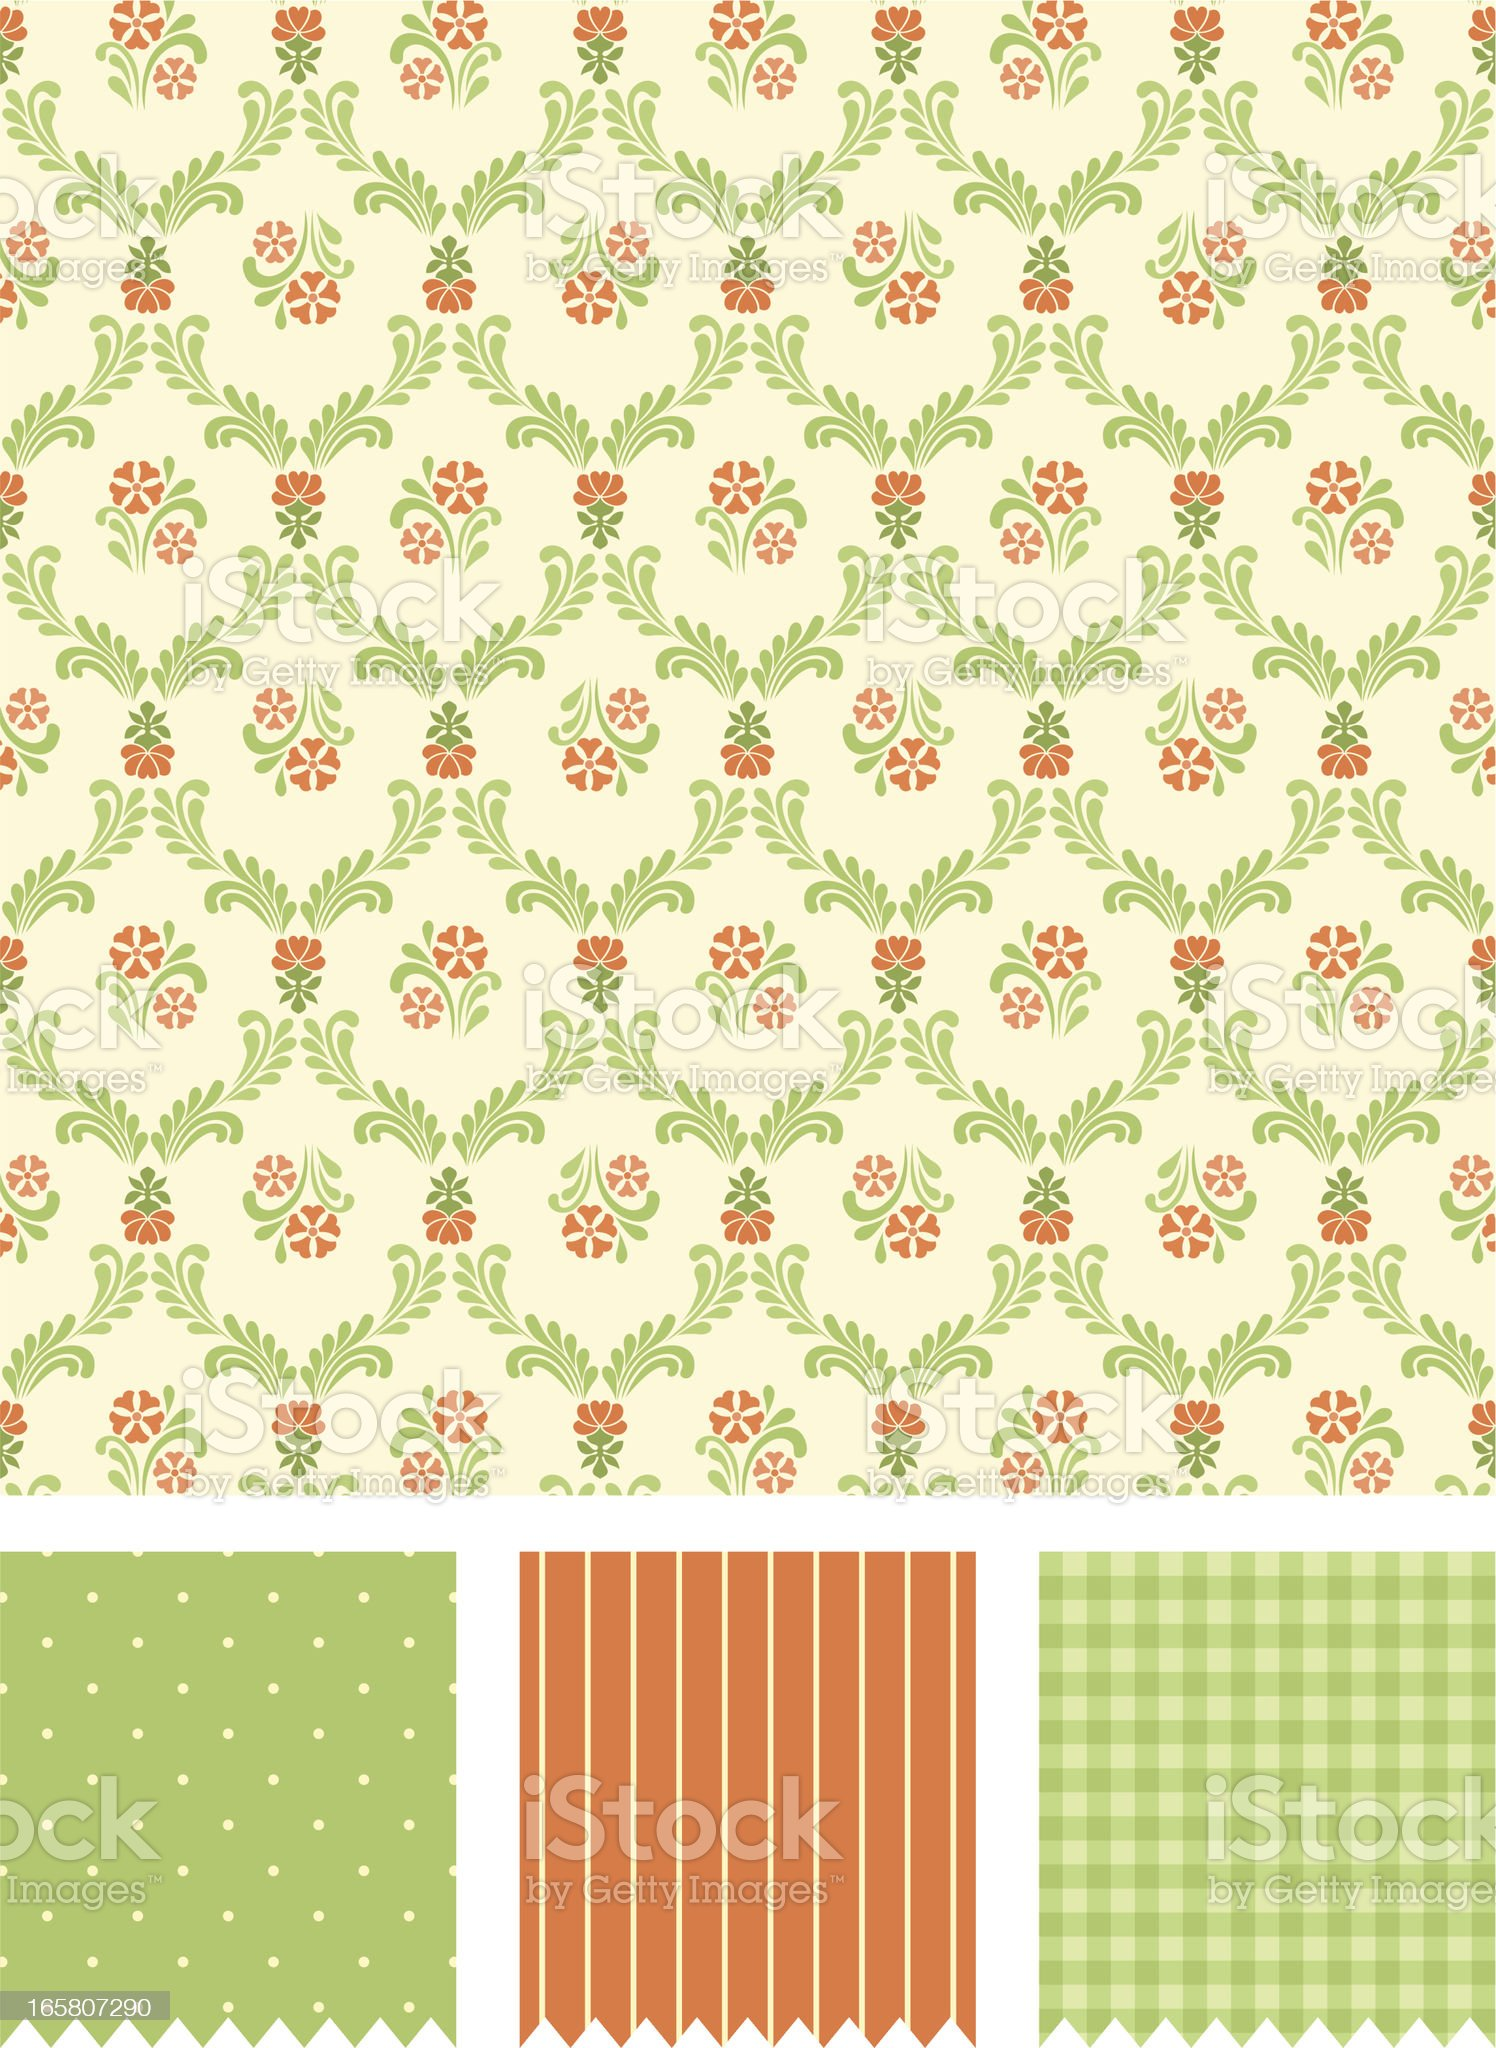 Floral victorian pattern royalty-free stock vector art